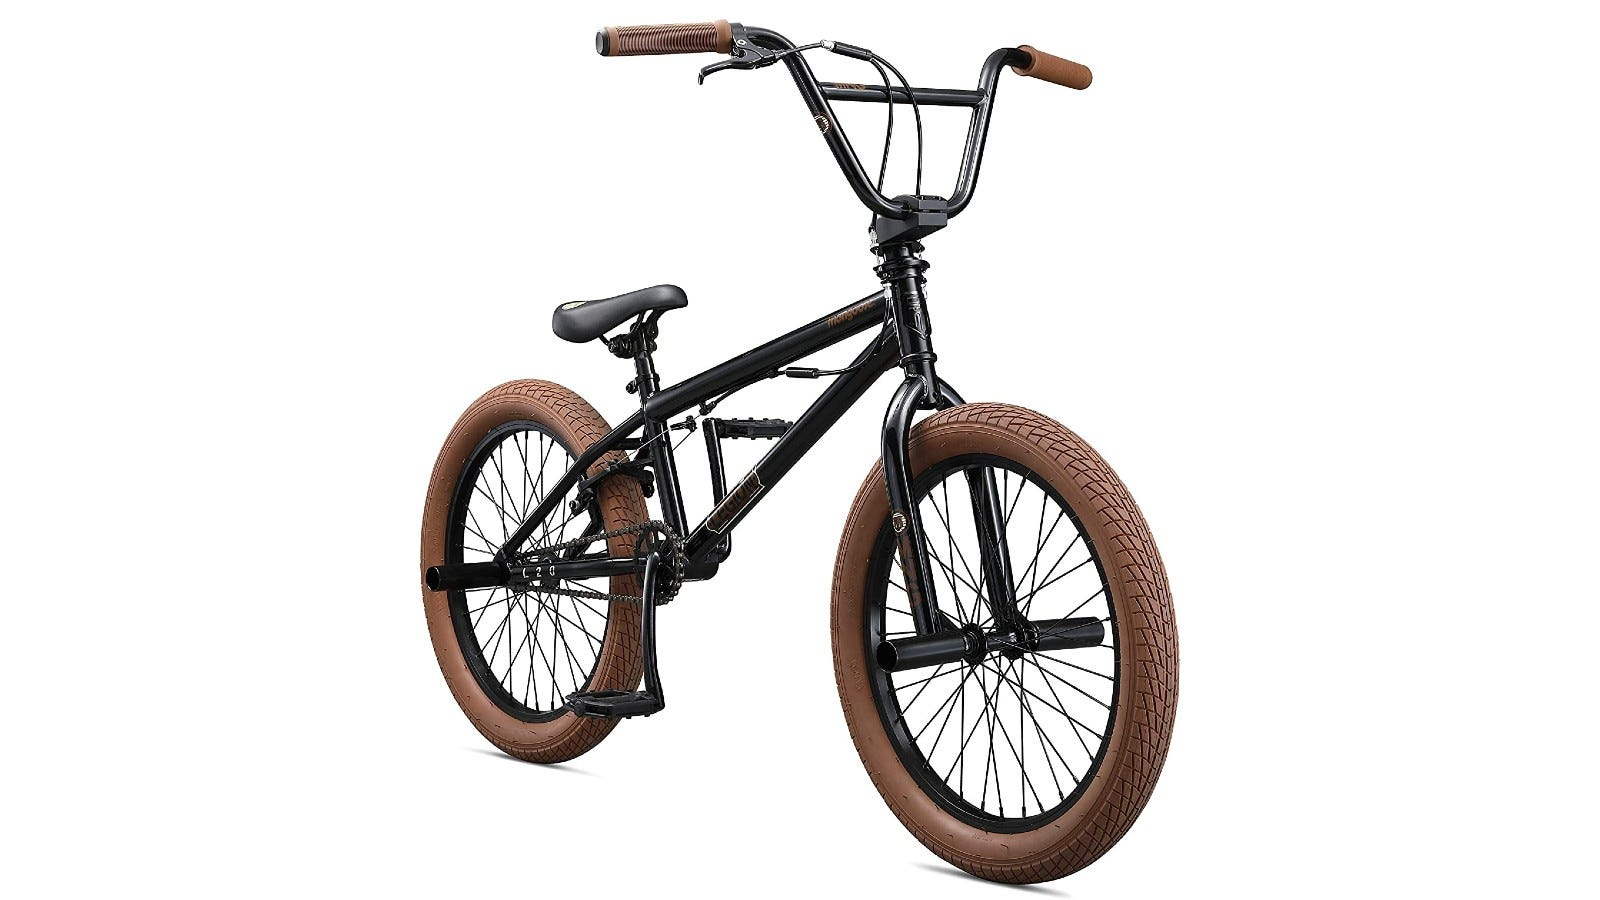 This BMX bike comes with a durable steel frame